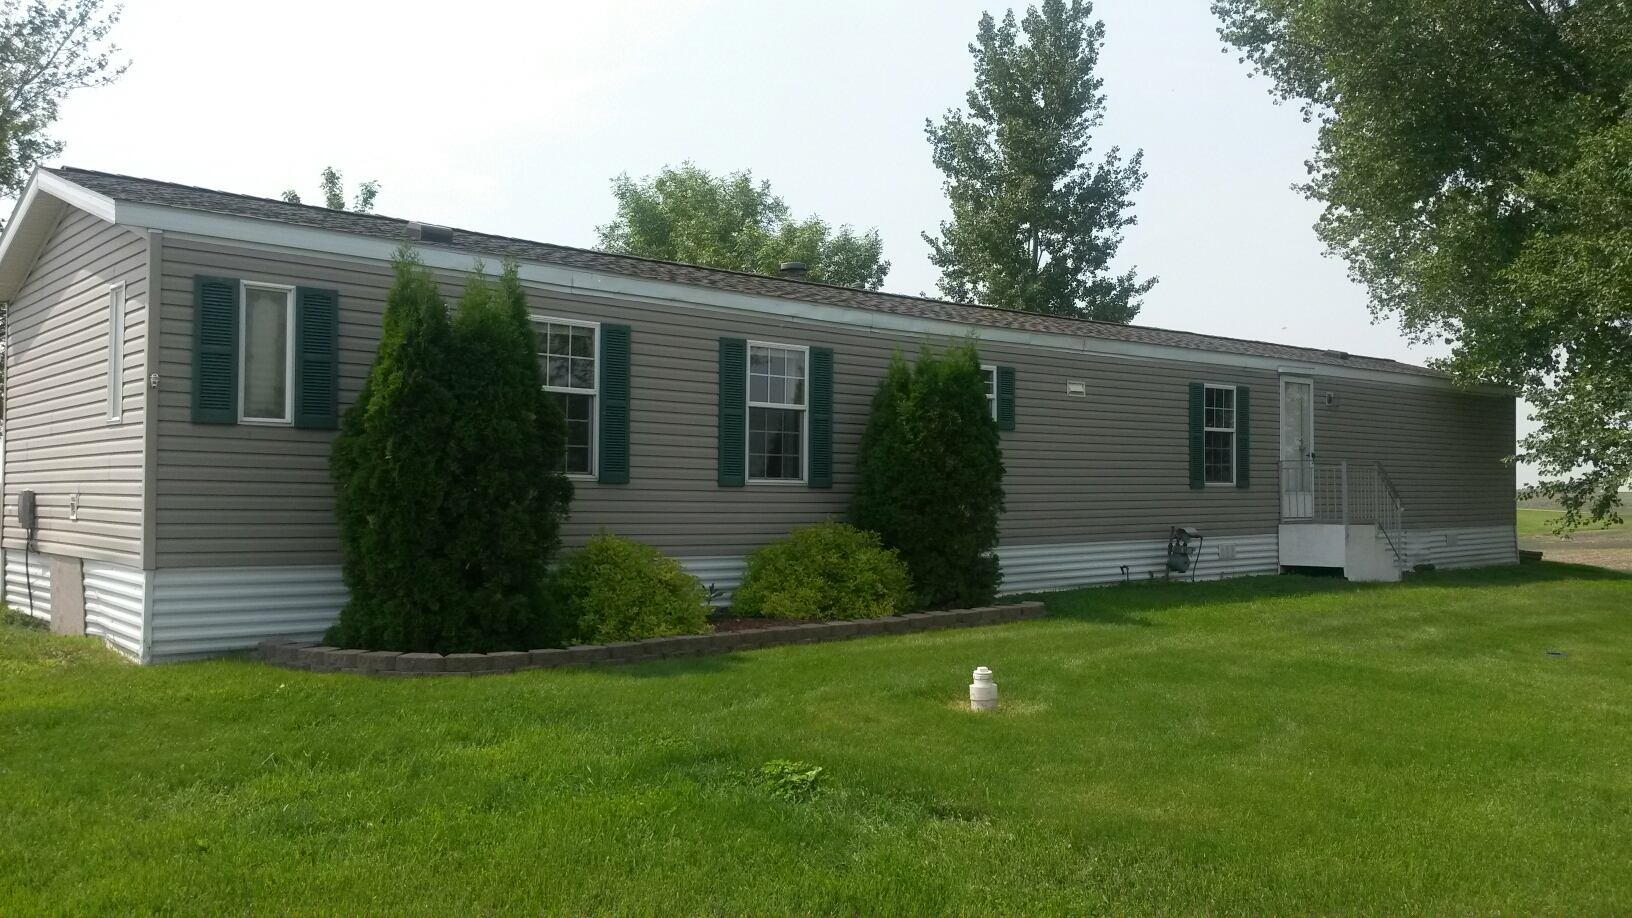 1997-Liberty-Ext-1  Mobile Home X on mobile home 24x44, mobile home 28x76, mobile home 28x56,